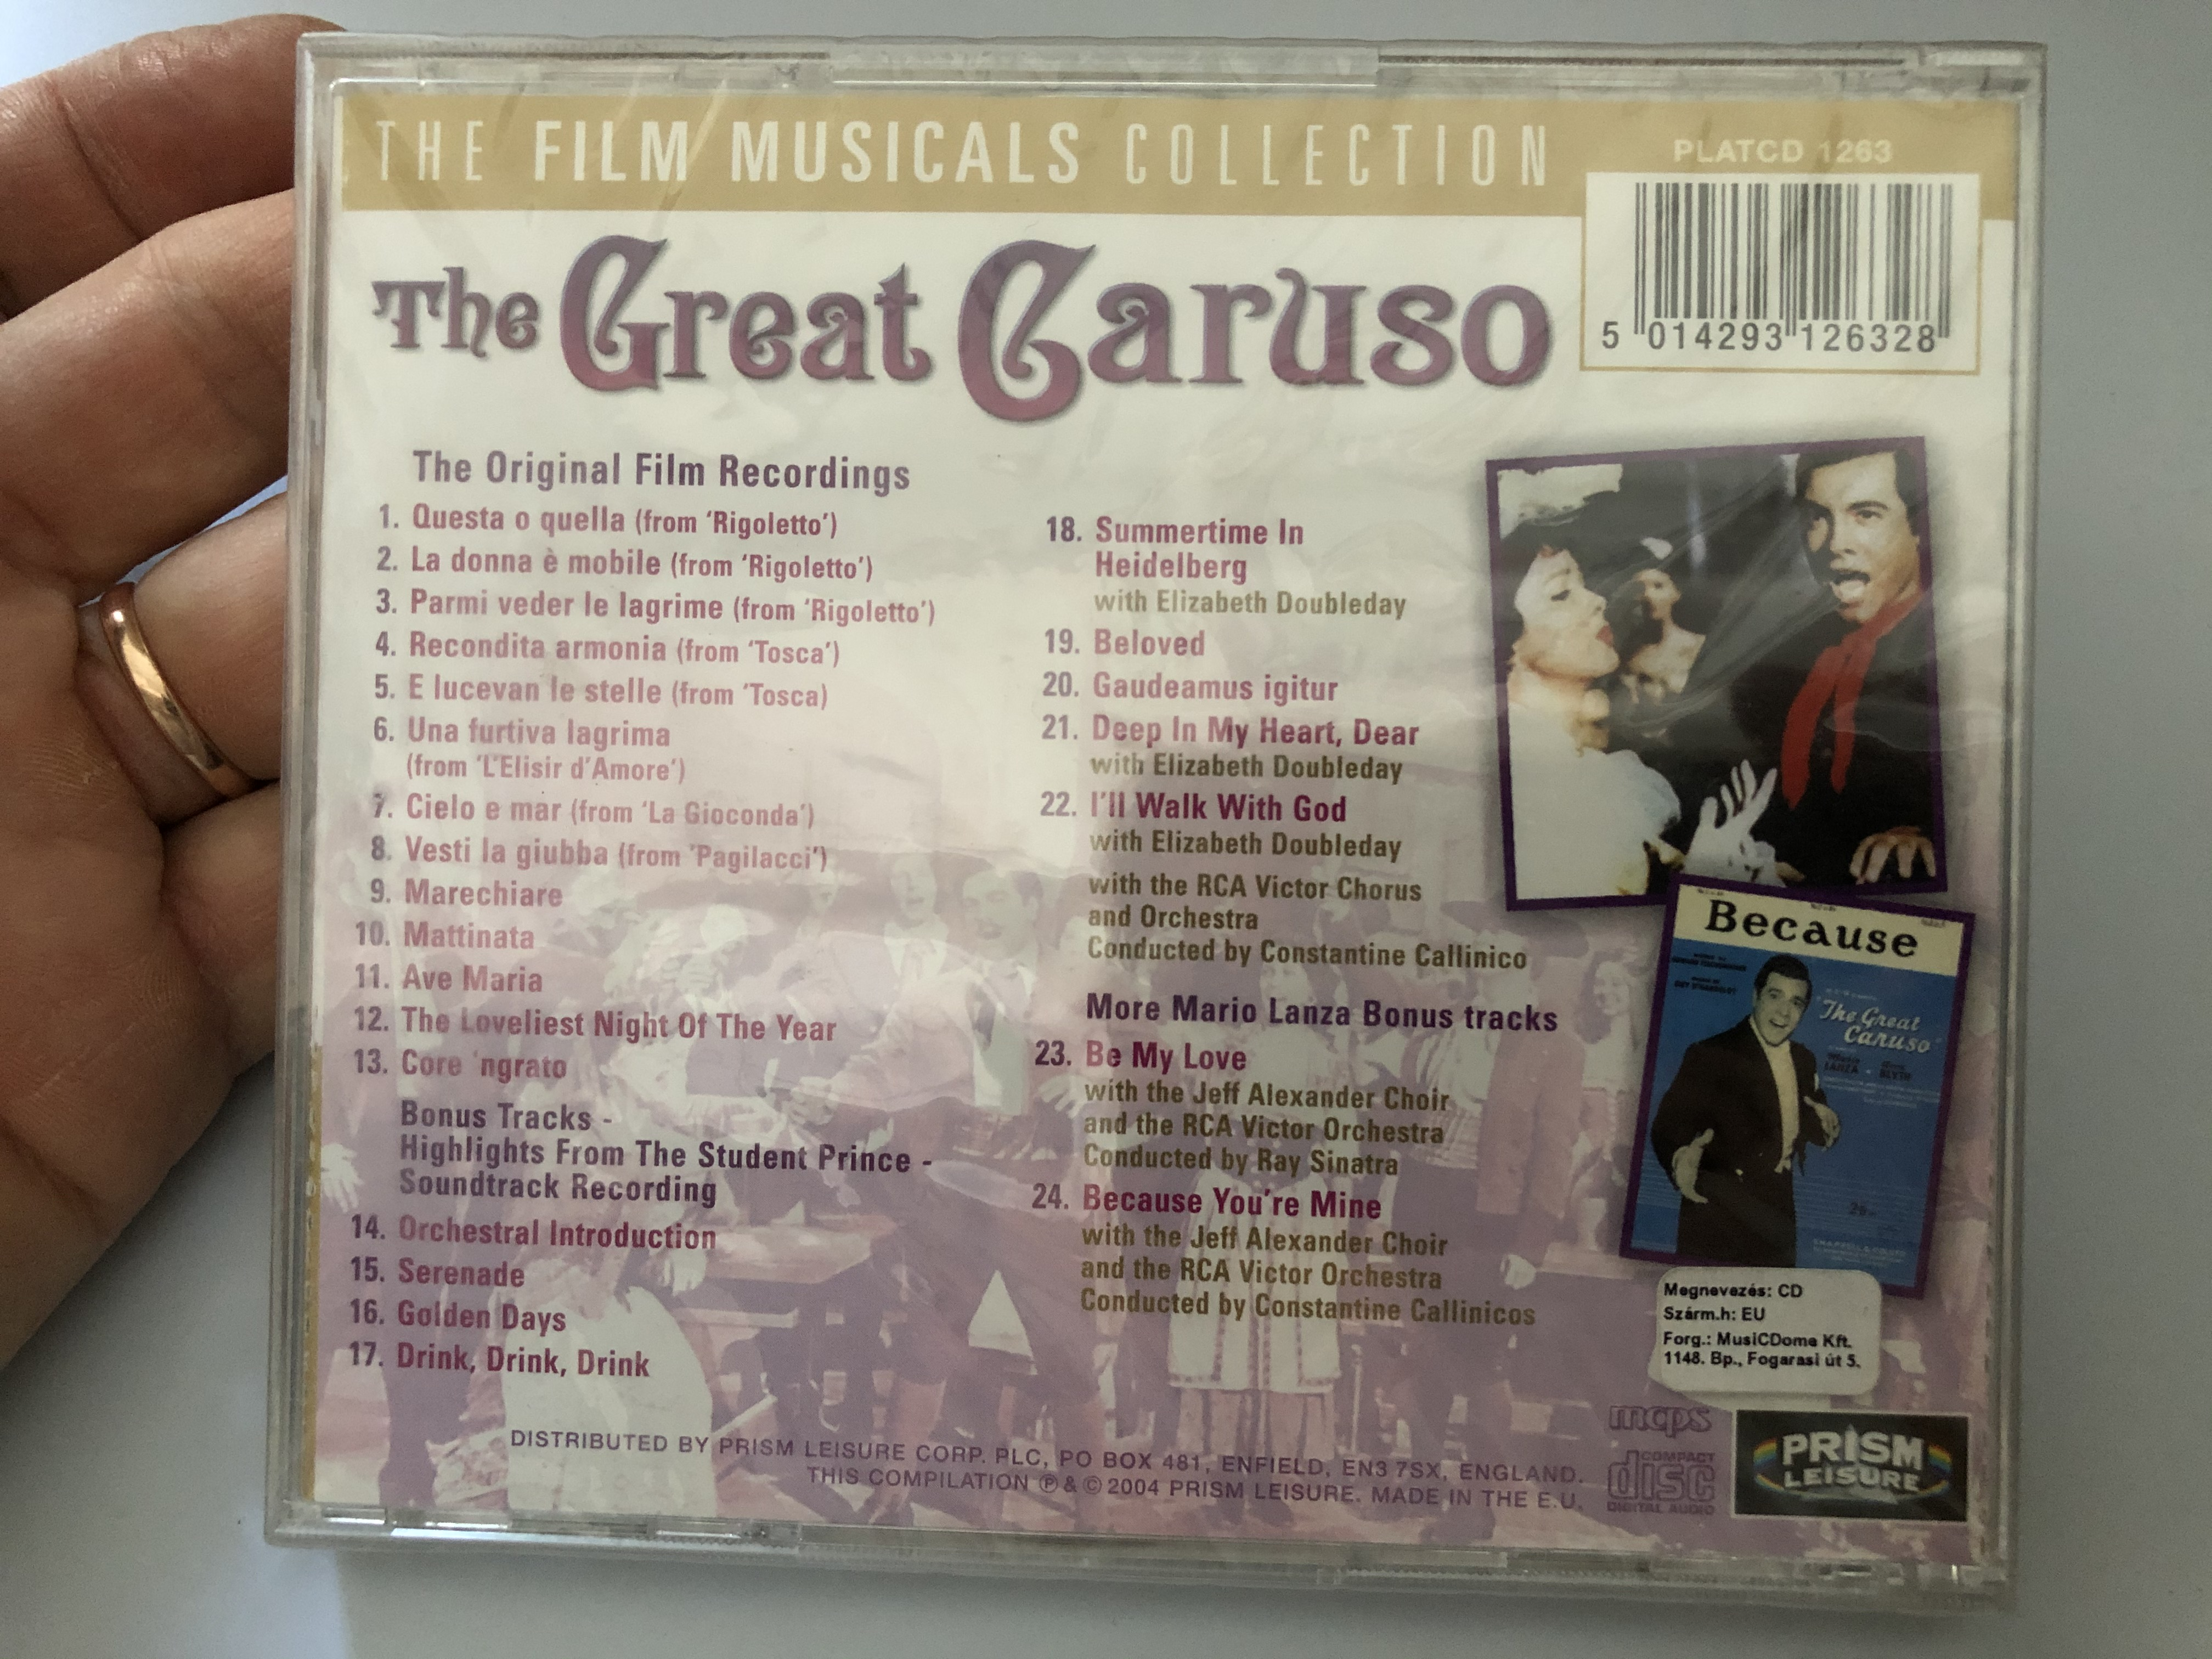 the-great-caruso-starring-mario-lanza-ann-blyth-the-film-musicals-collection-prism-leisure-audio-cd-2004-platcd-1263-2-.jpg